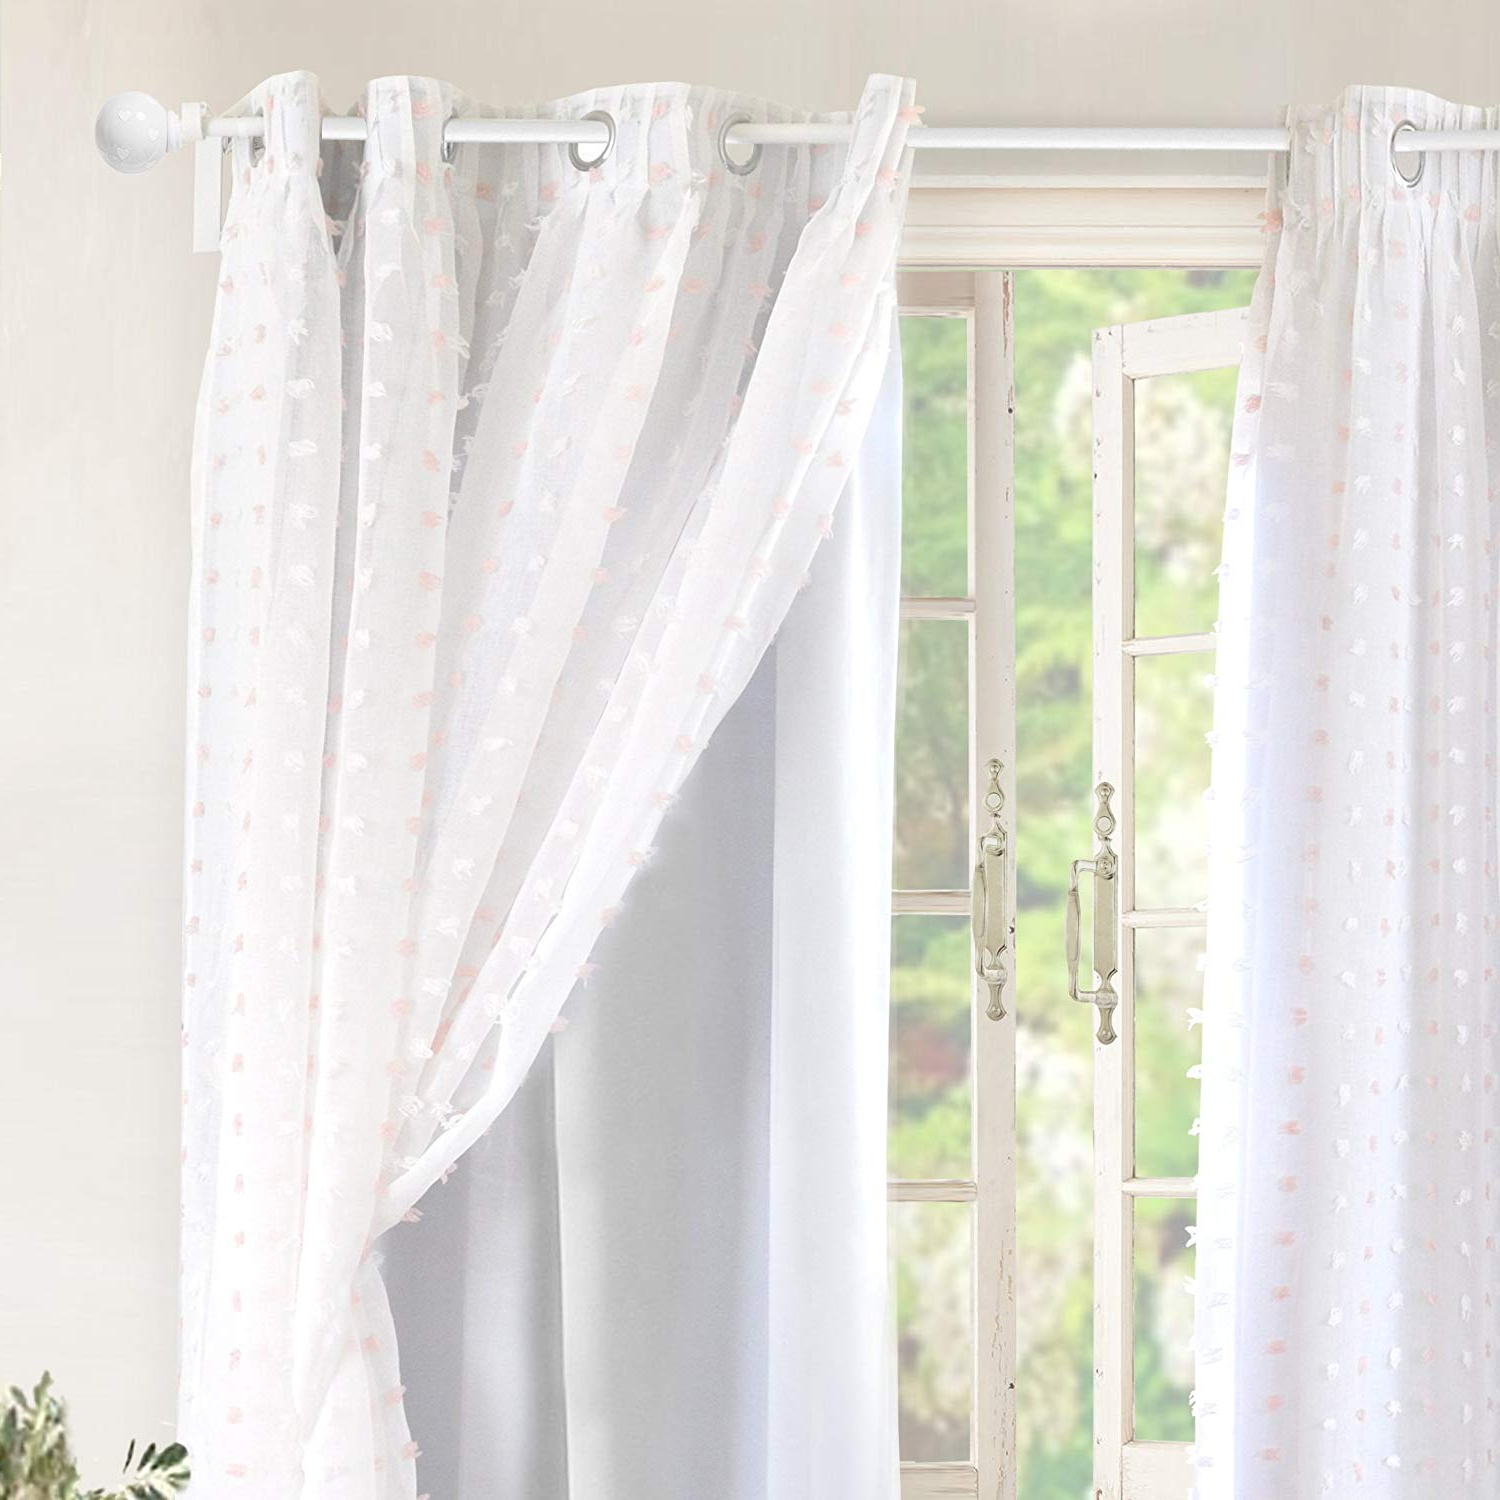 Widely Used Double Layer Sheer White Single Curtain Panels Throughout Driftaway Lily White Pinch Pleated Voile Sheer Blackout Curtain Liner  Embroidered With Pom Pom One Panel Two Layers Grommet Curtain For Kids  Nursery (View 20 of 20)